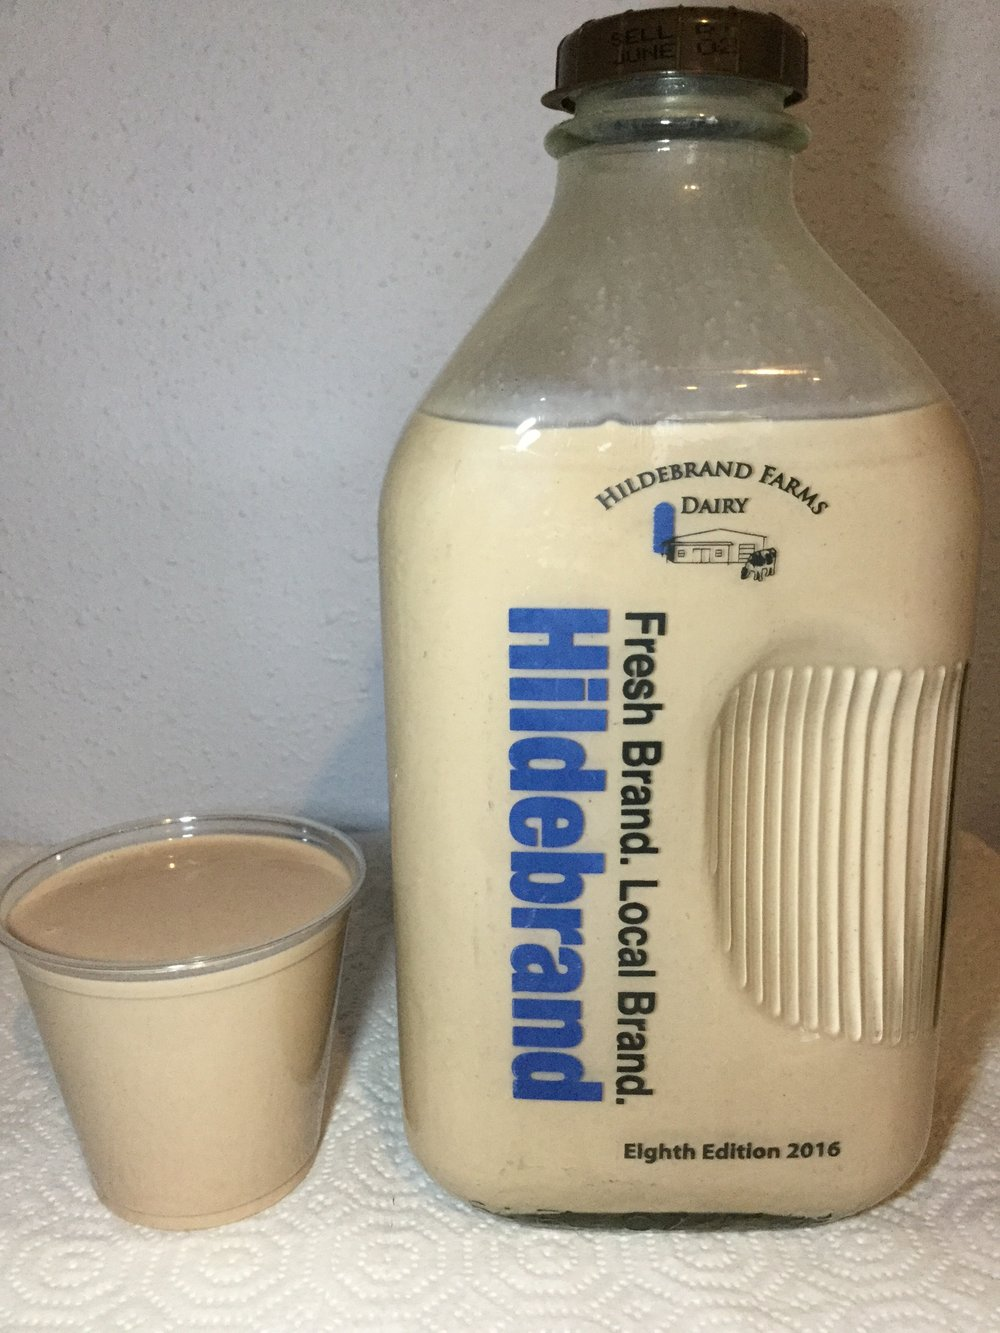 Hildebrand Farms Dairy Chocolate Milk Cup